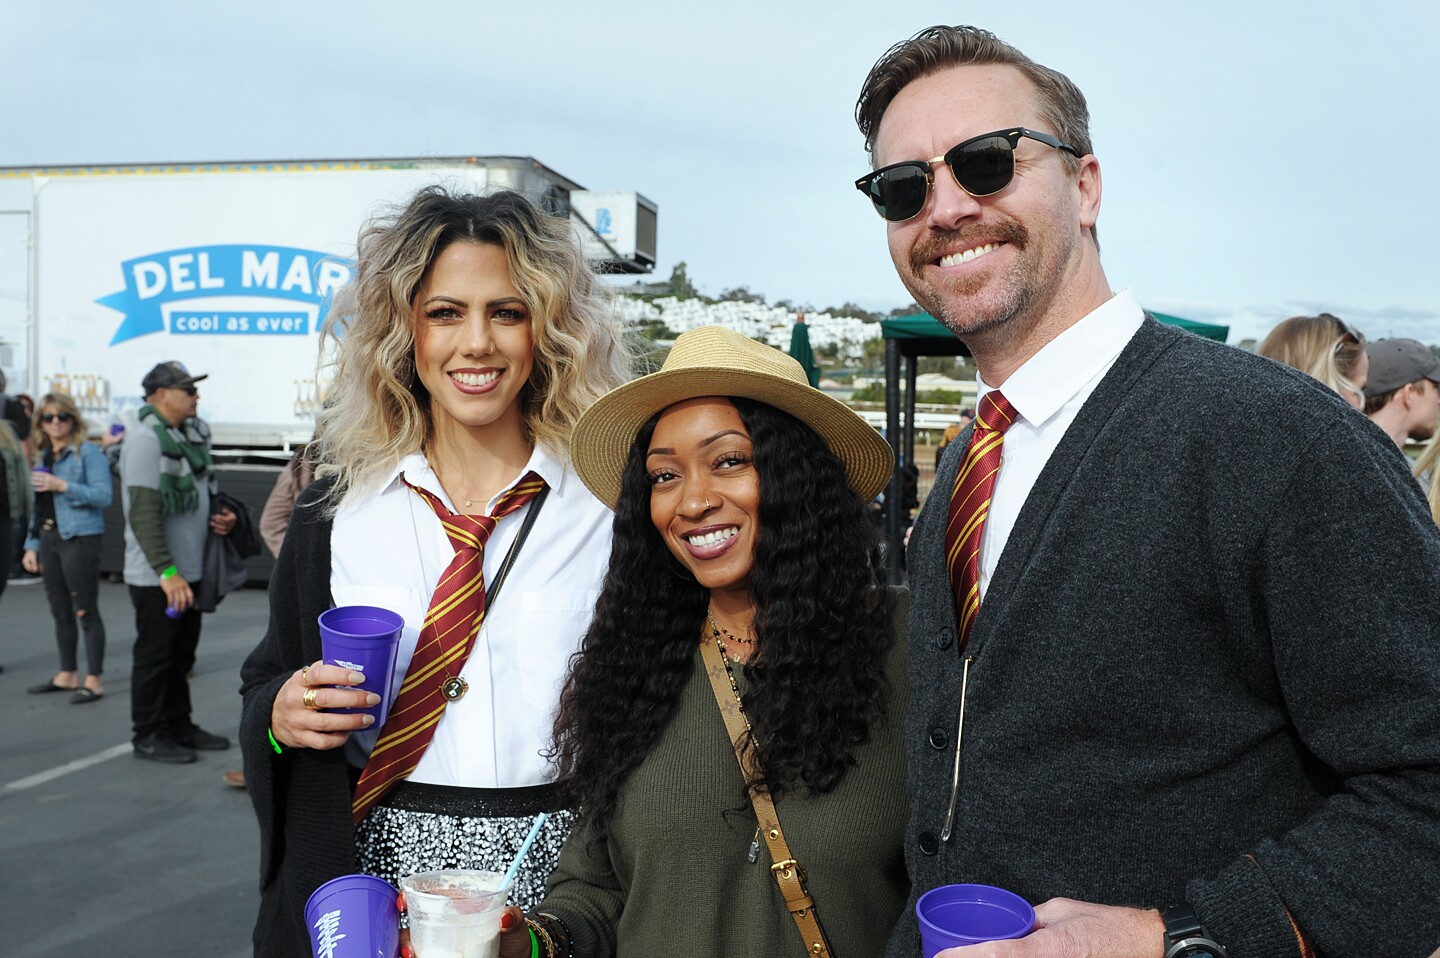 Slytherins, Hufflepuffs and everyone in between were welcome at the Wizards Beerfest at the Del Mar Racetrack on Saturday, Nov. 30, 2019.